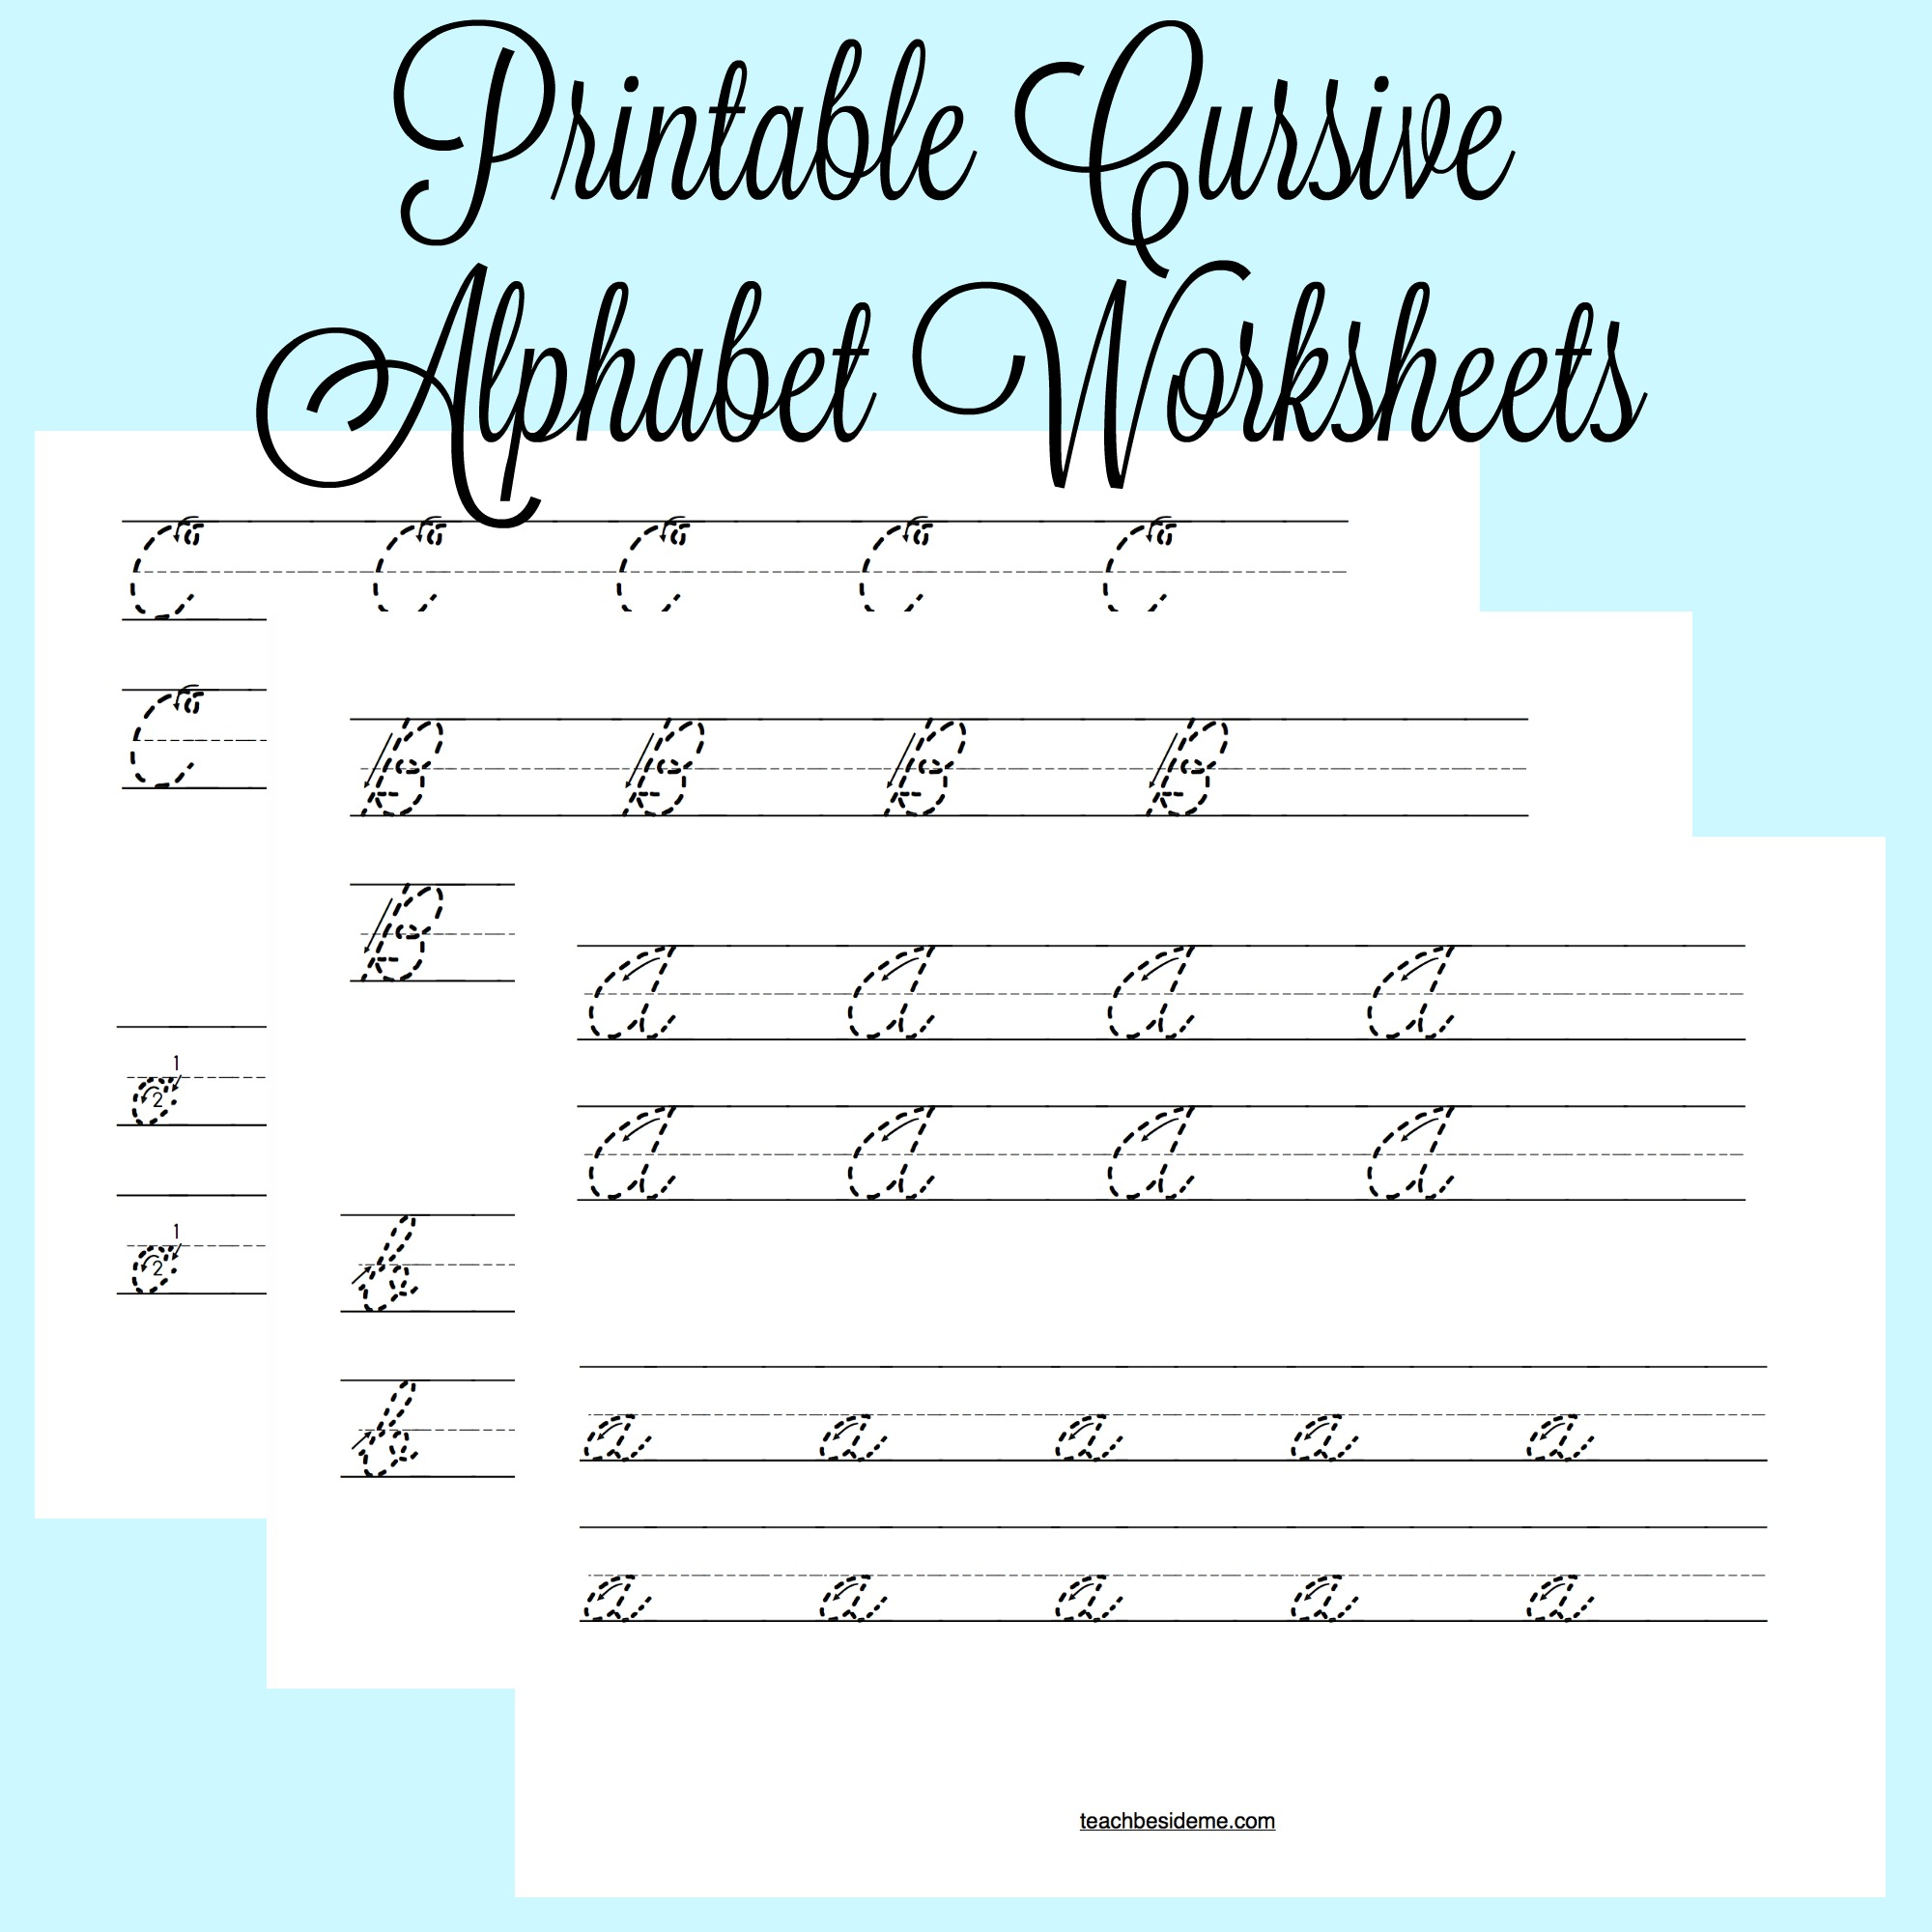 Kindergarten Alphabet Worksheets Results